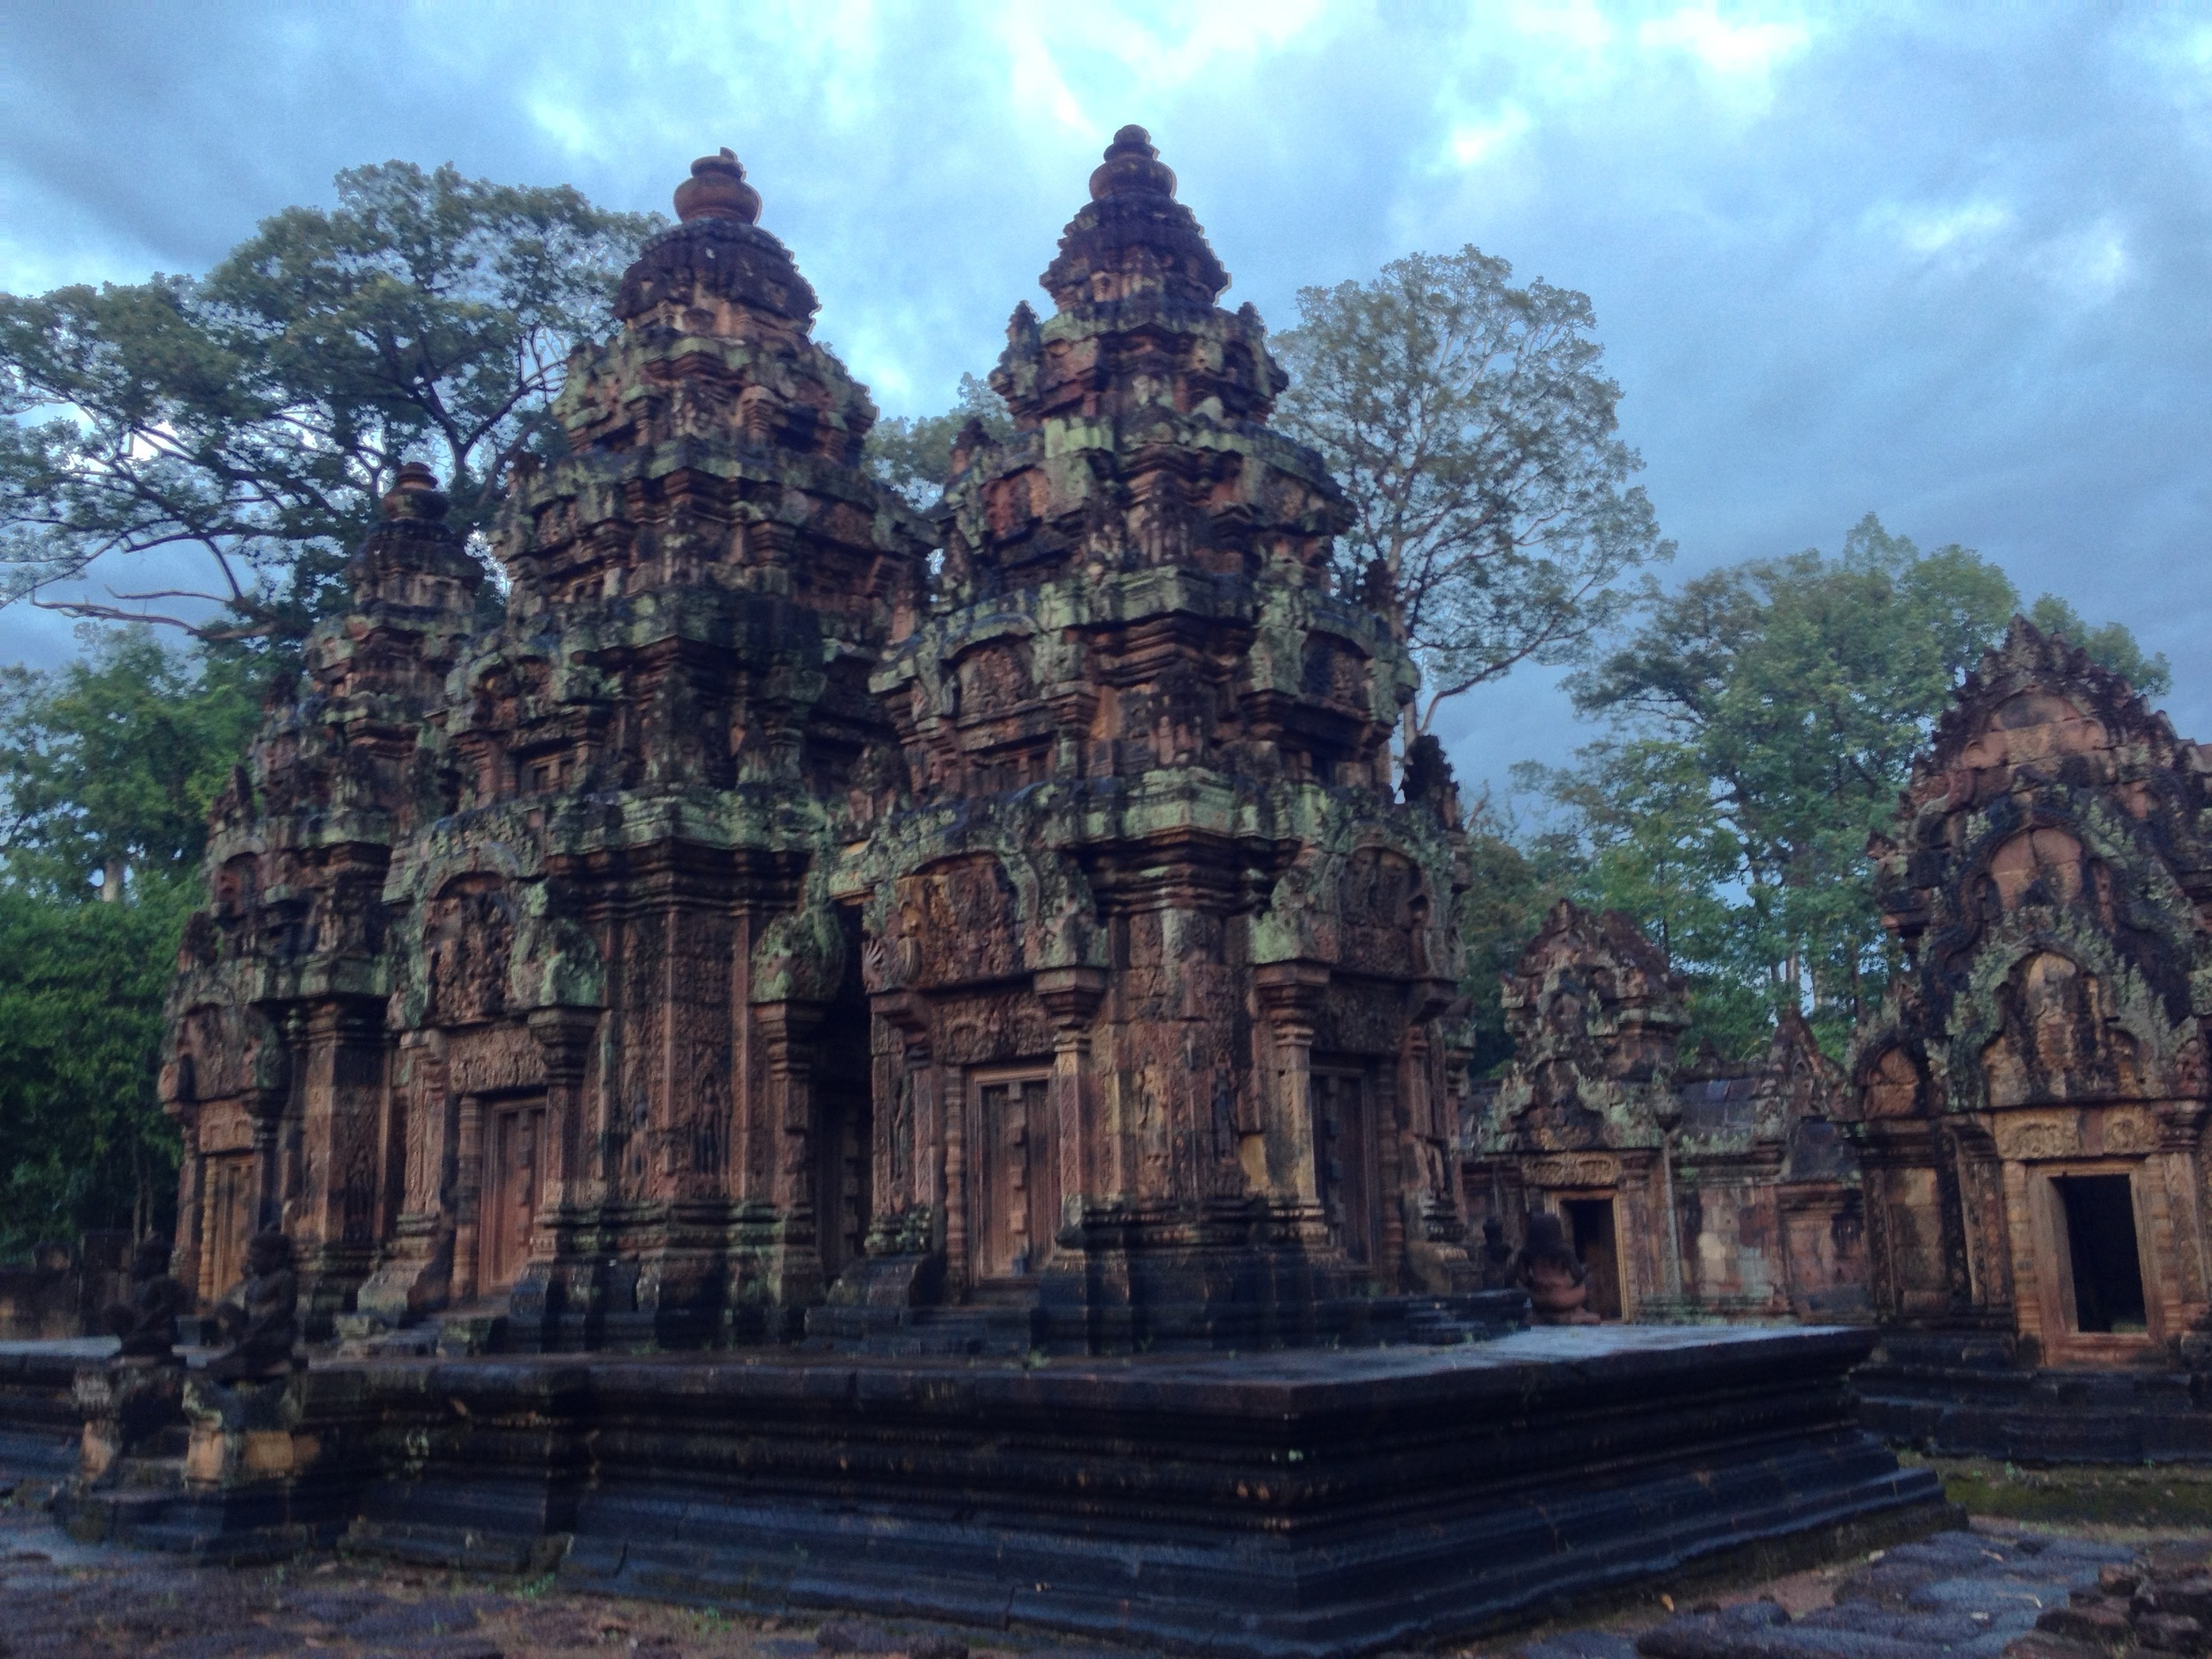 """Finally on to Siem Reap to visit Angkor Wat and the other surrounding temples. This is Banteay Srej, or the Citadel of Women, recognized as a tribute to the beauty of women. A big part of the """"wow factor"""" of these sites isn't so much the temples themselves as it is their surroundings and the mood they convey. This was shot just after a tropical downpour and the light captures some of that feeling. Sometimes you have to mentally photoshop out the other tourists in order to get the full effect, but it's not too hard to do this."""